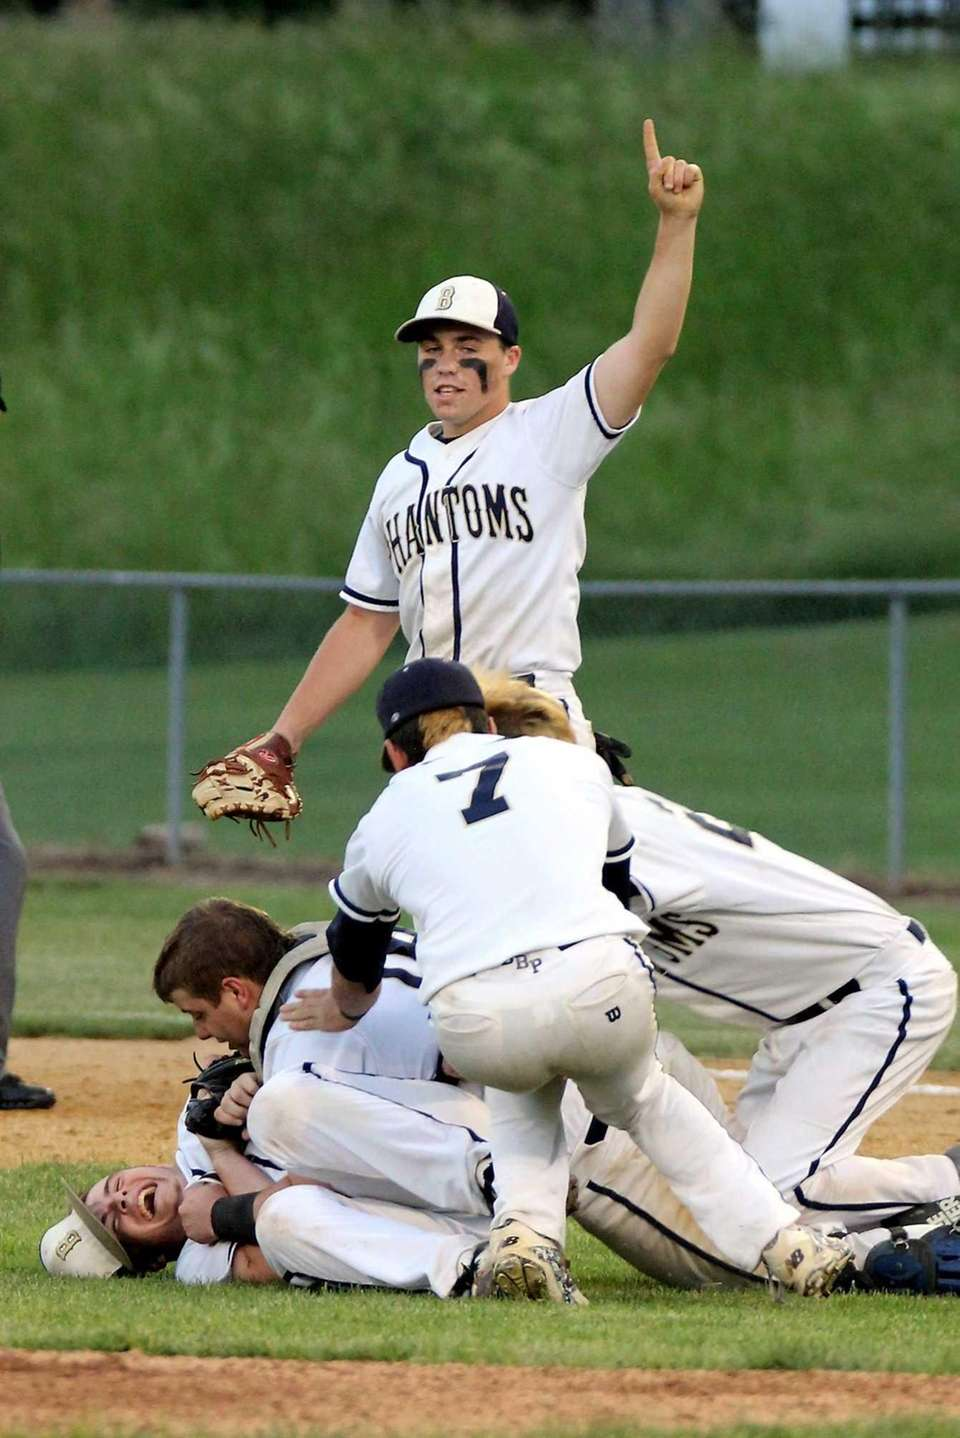 Bayport-Blue Point pitcher PJ Weeks, bottom left, gets